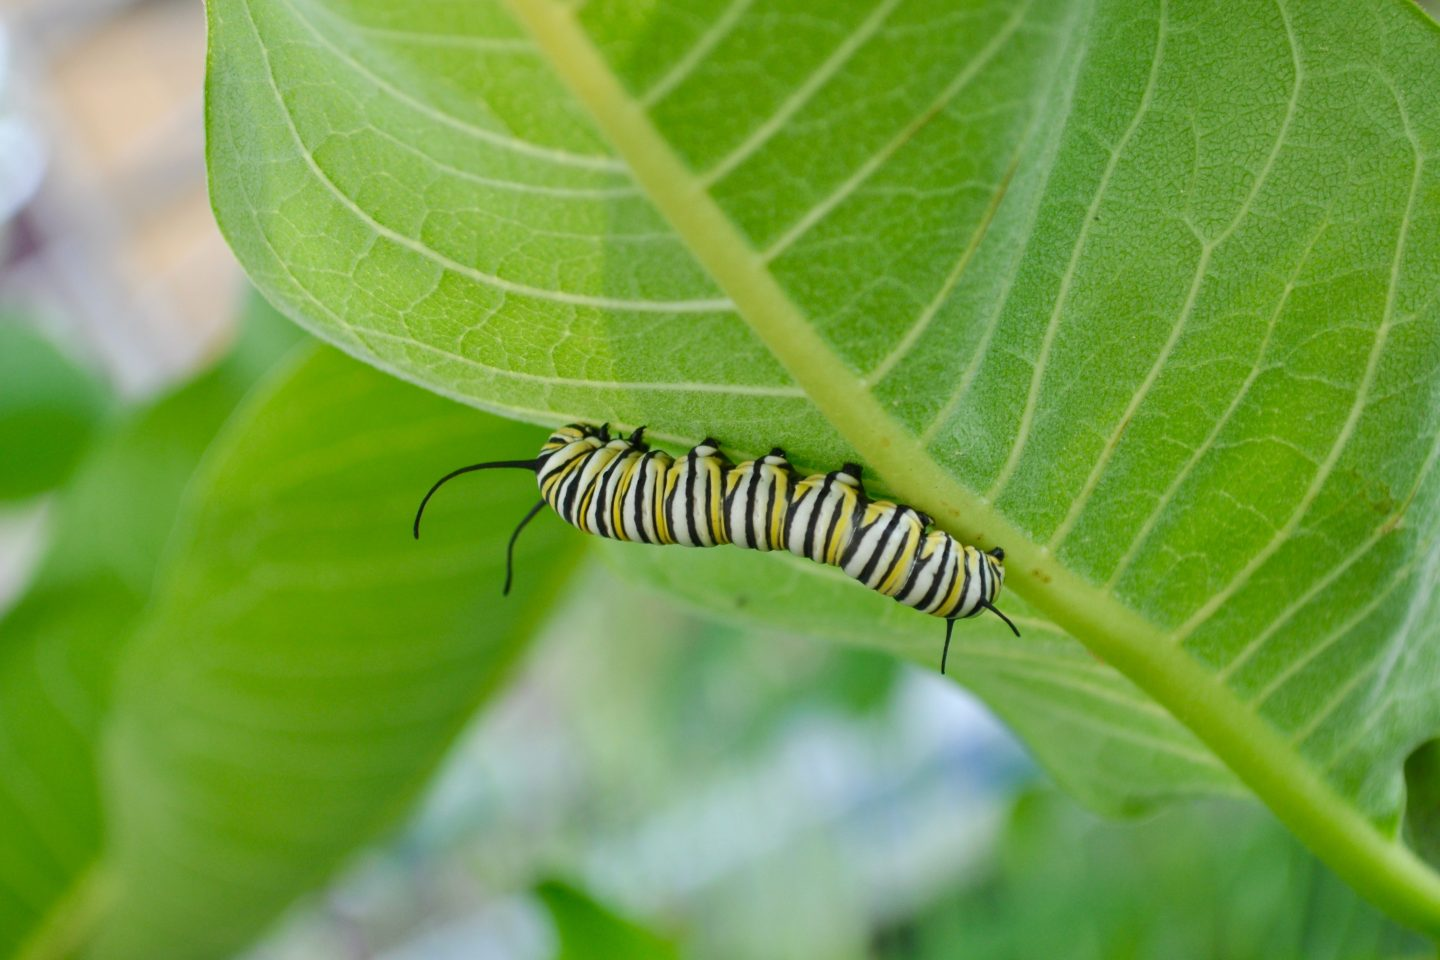 Caterpillar deterring pests